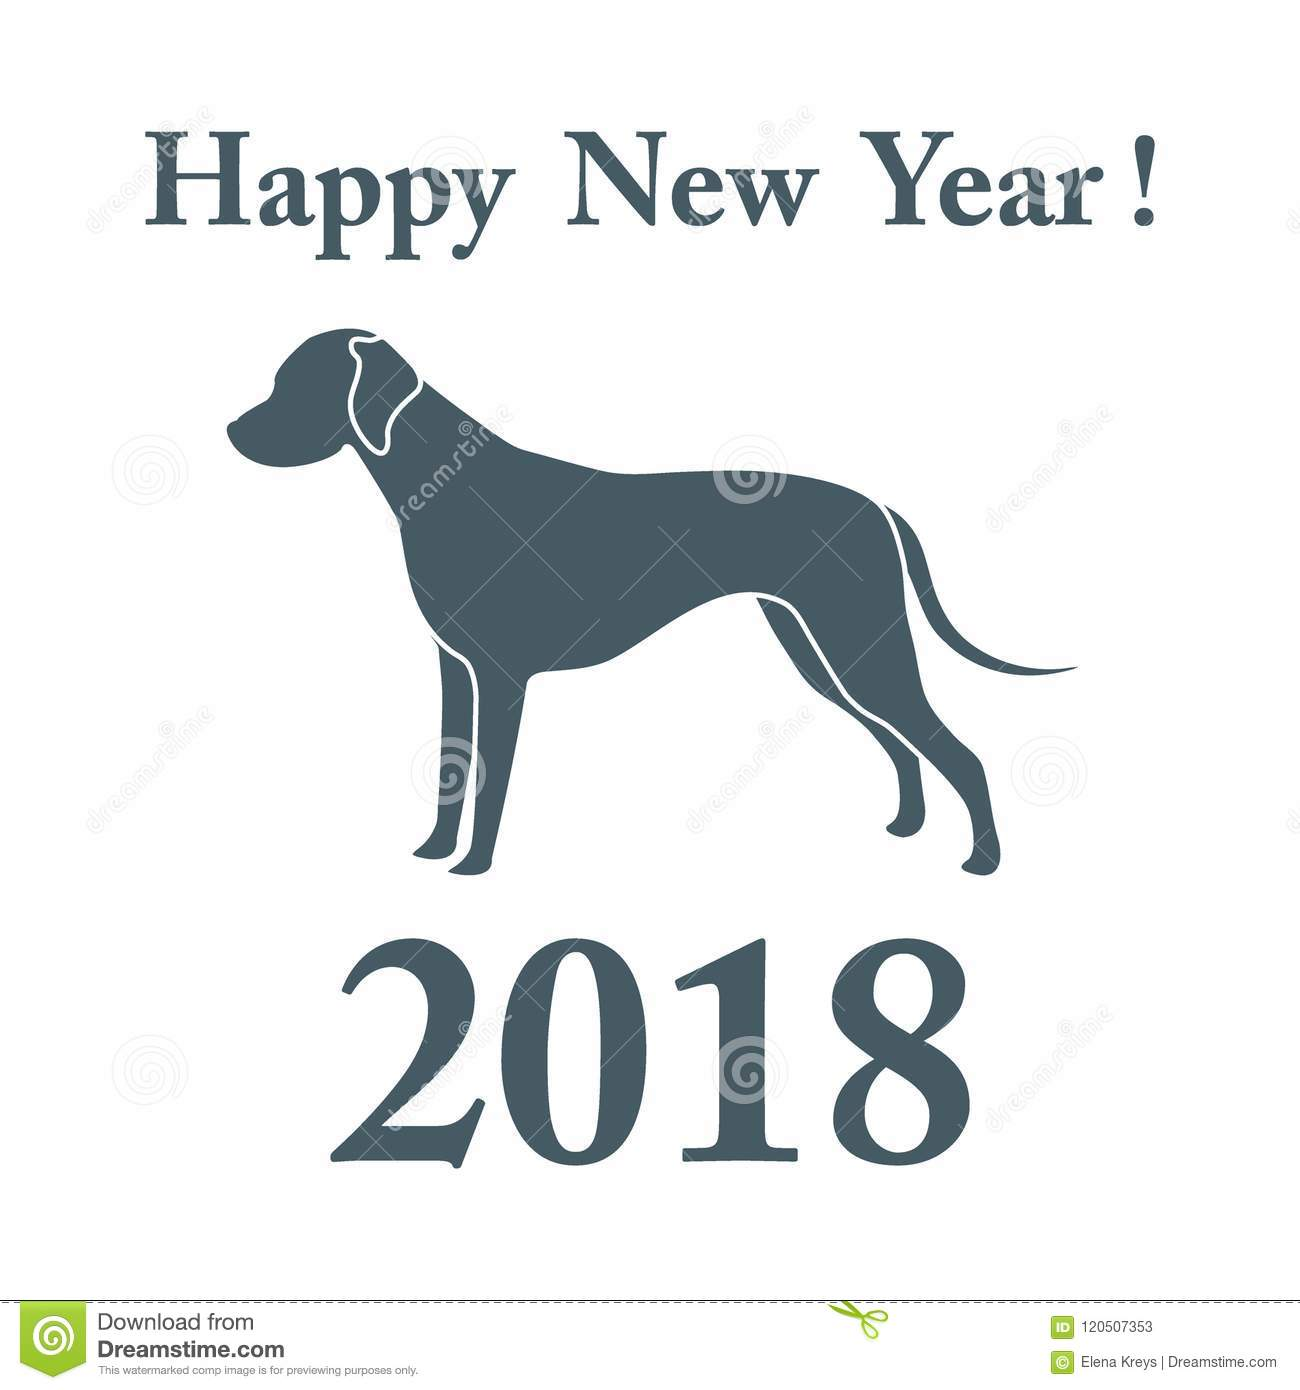 Dalmatian Silhouette And Inscription Happy New Year. Stock Vector ...